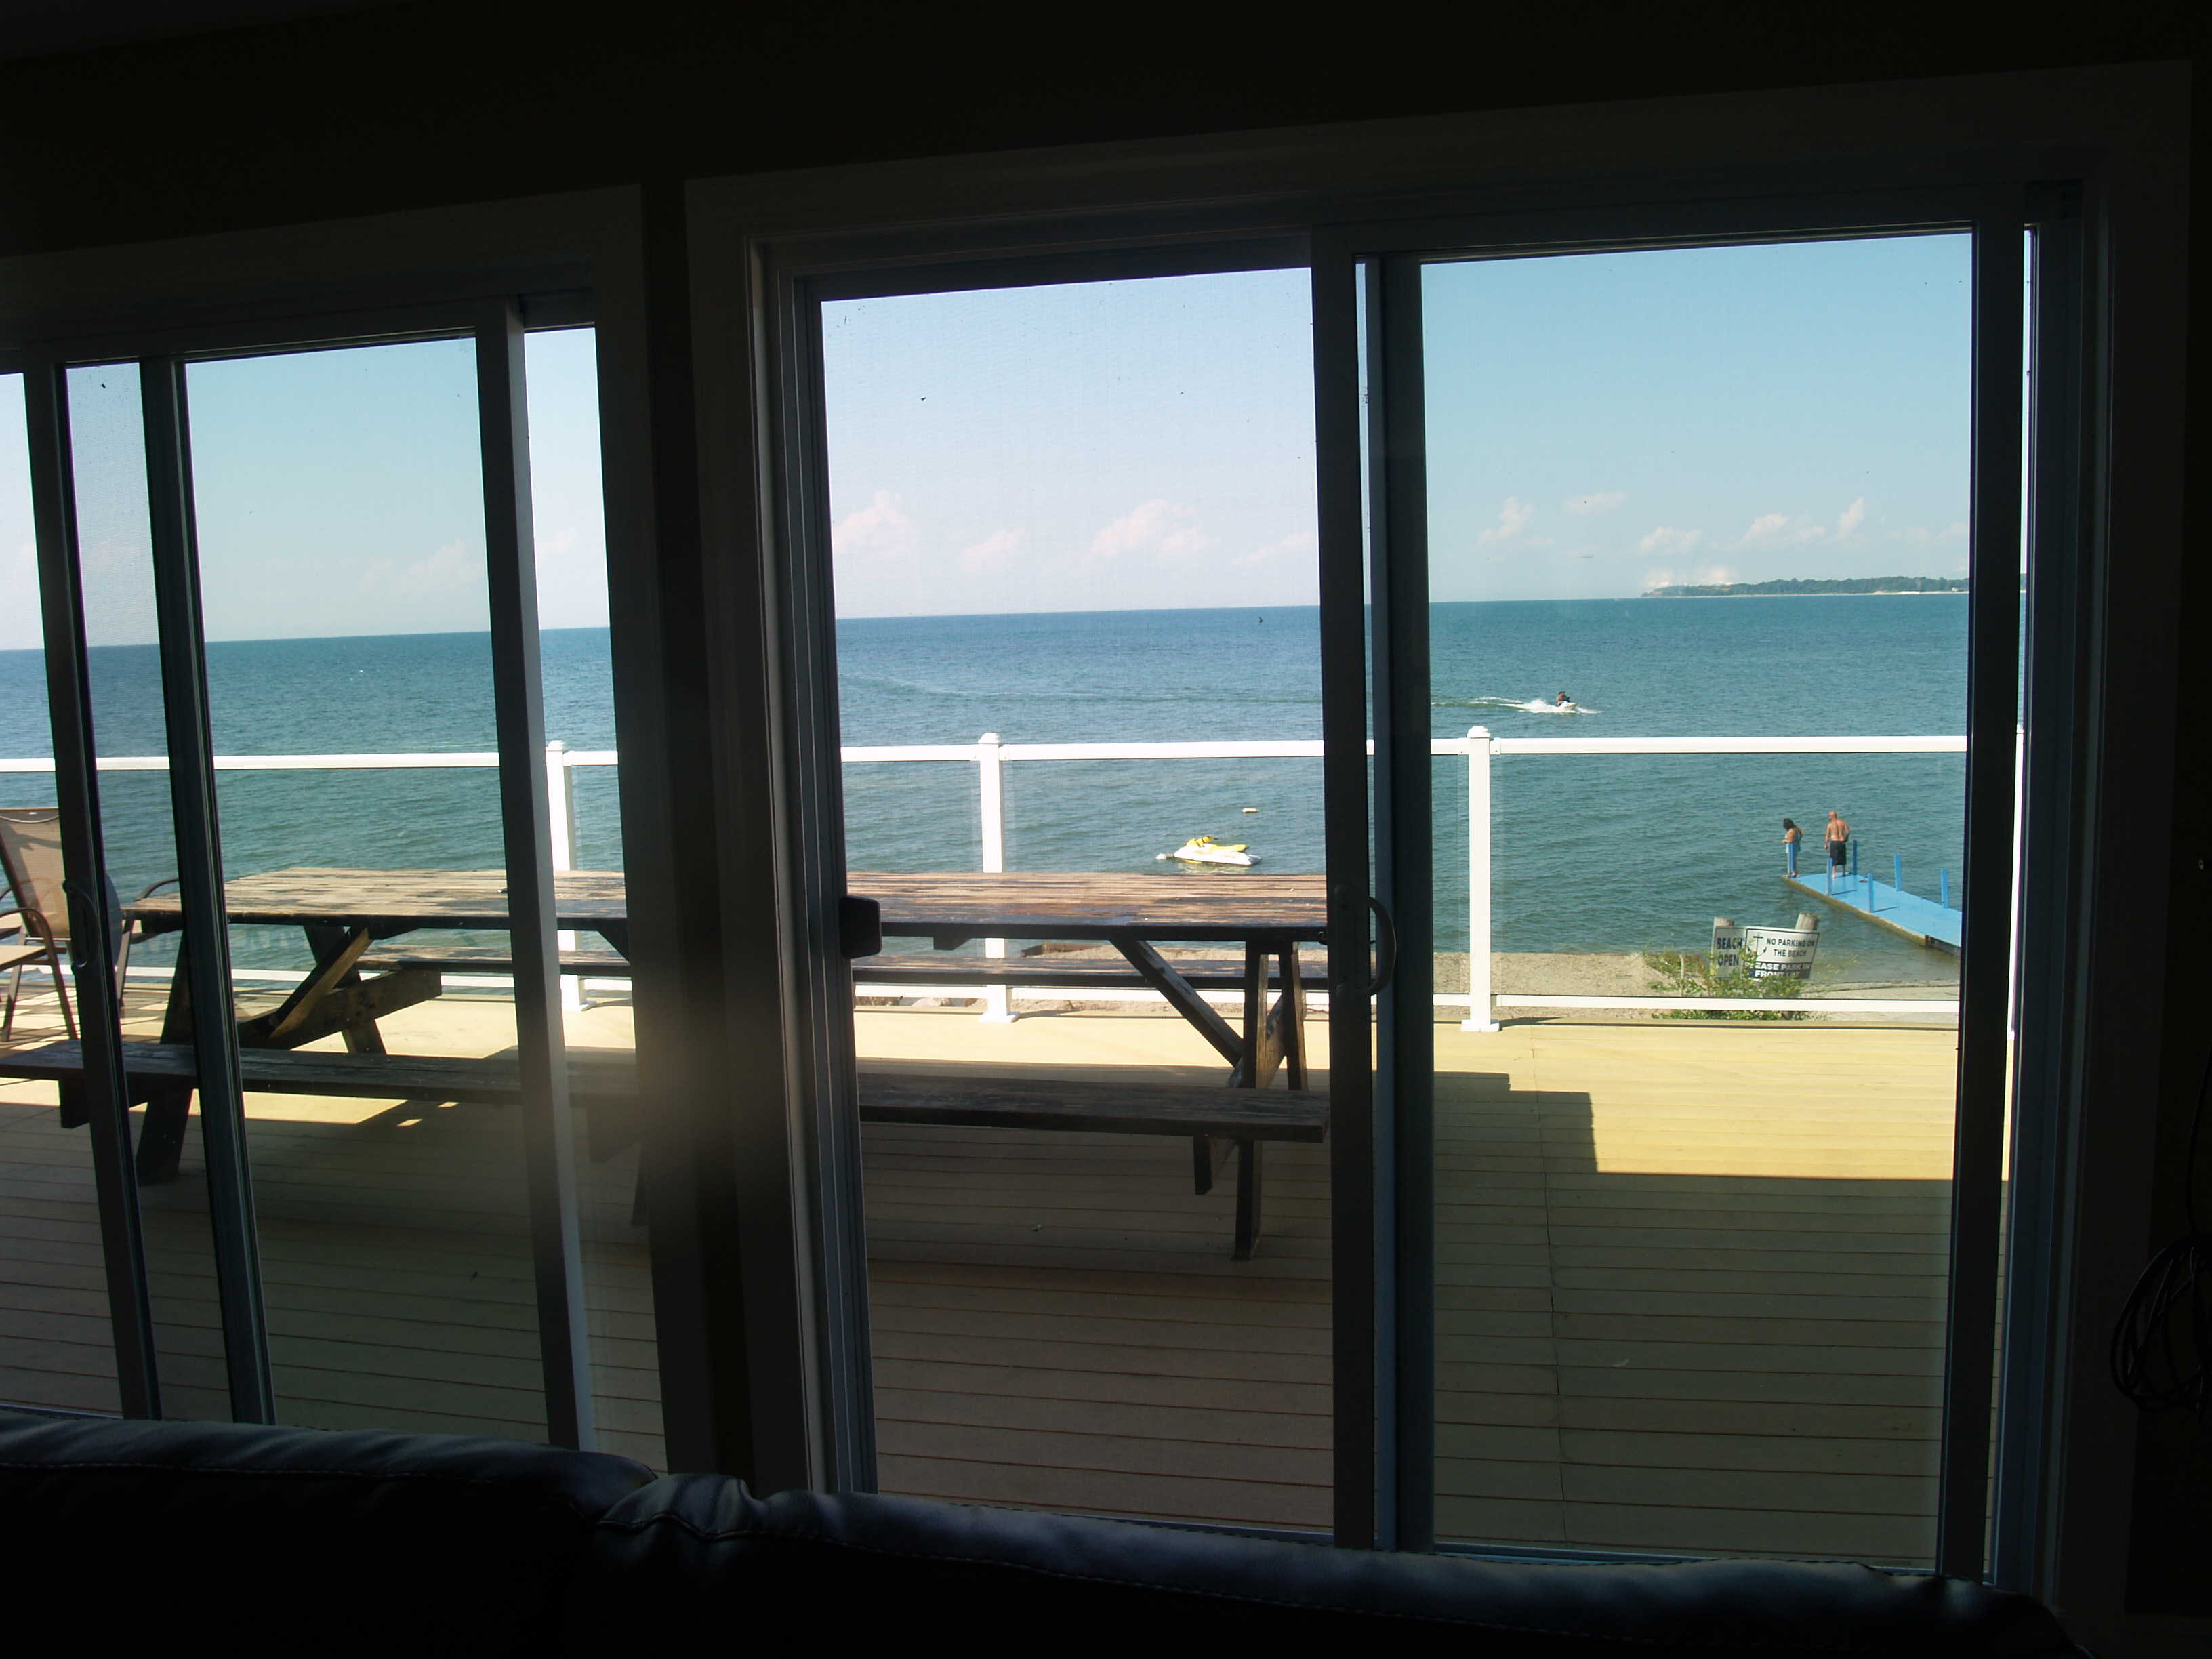 View looking out to Deck